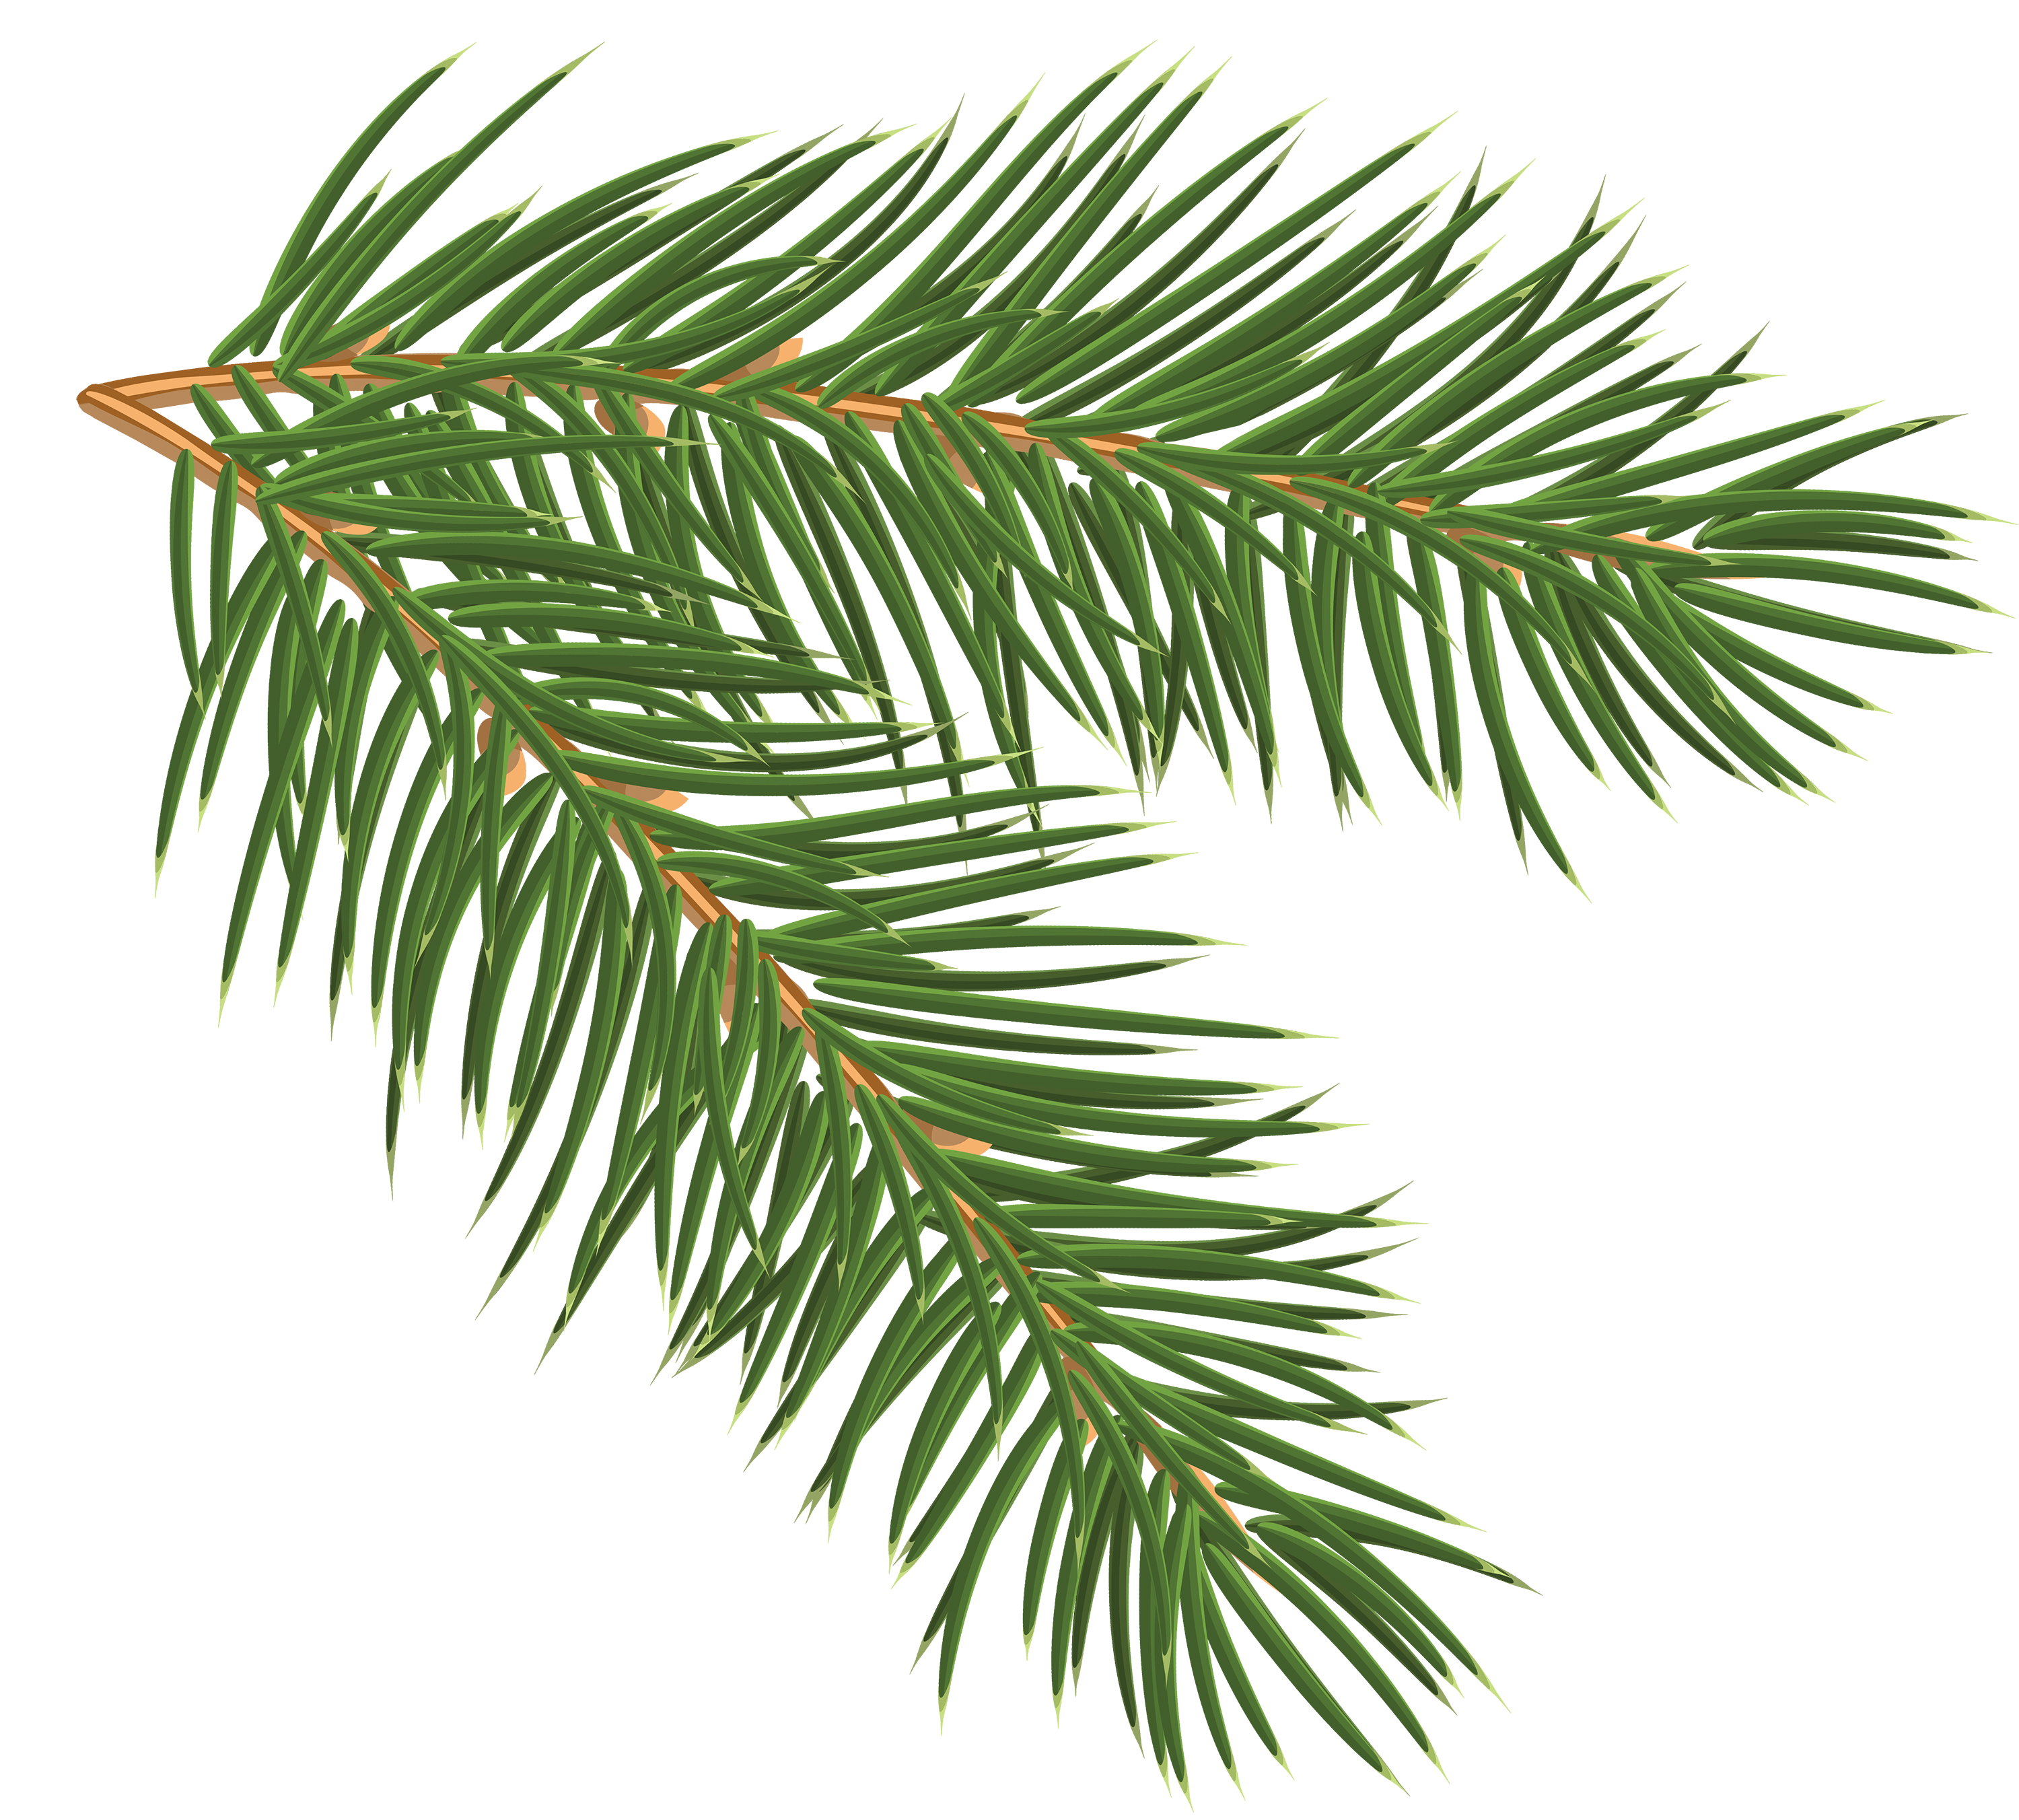 Pine branch clipart.